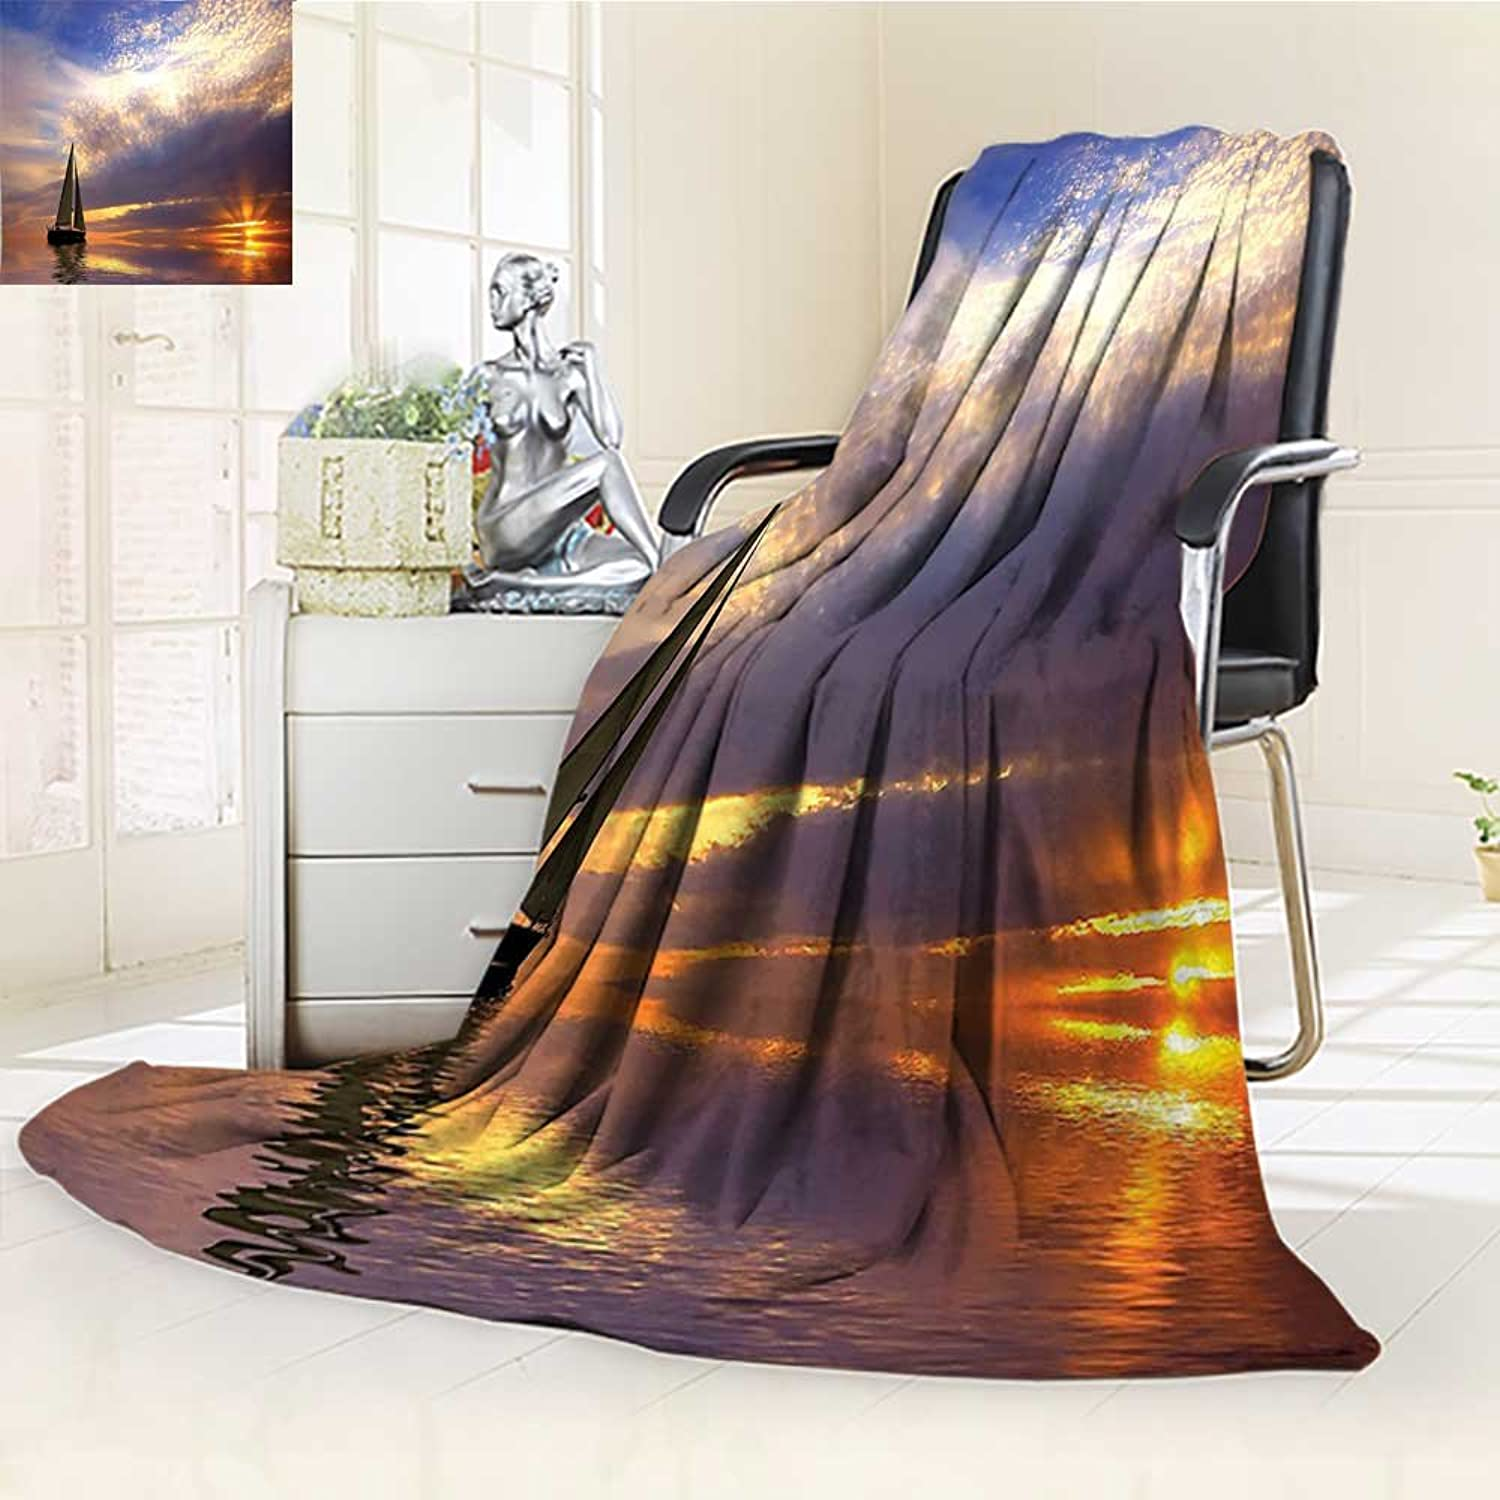 YOYI-HOME Soft Warm Cozy Throw Duplex Printed Blanket Sailboat Decor Sailing with Sunset Sunbeams On Horizon Romance Honeymoon Destination Anti-Static,2 Ply Thick,Hypoallergenic W39.5  x H59